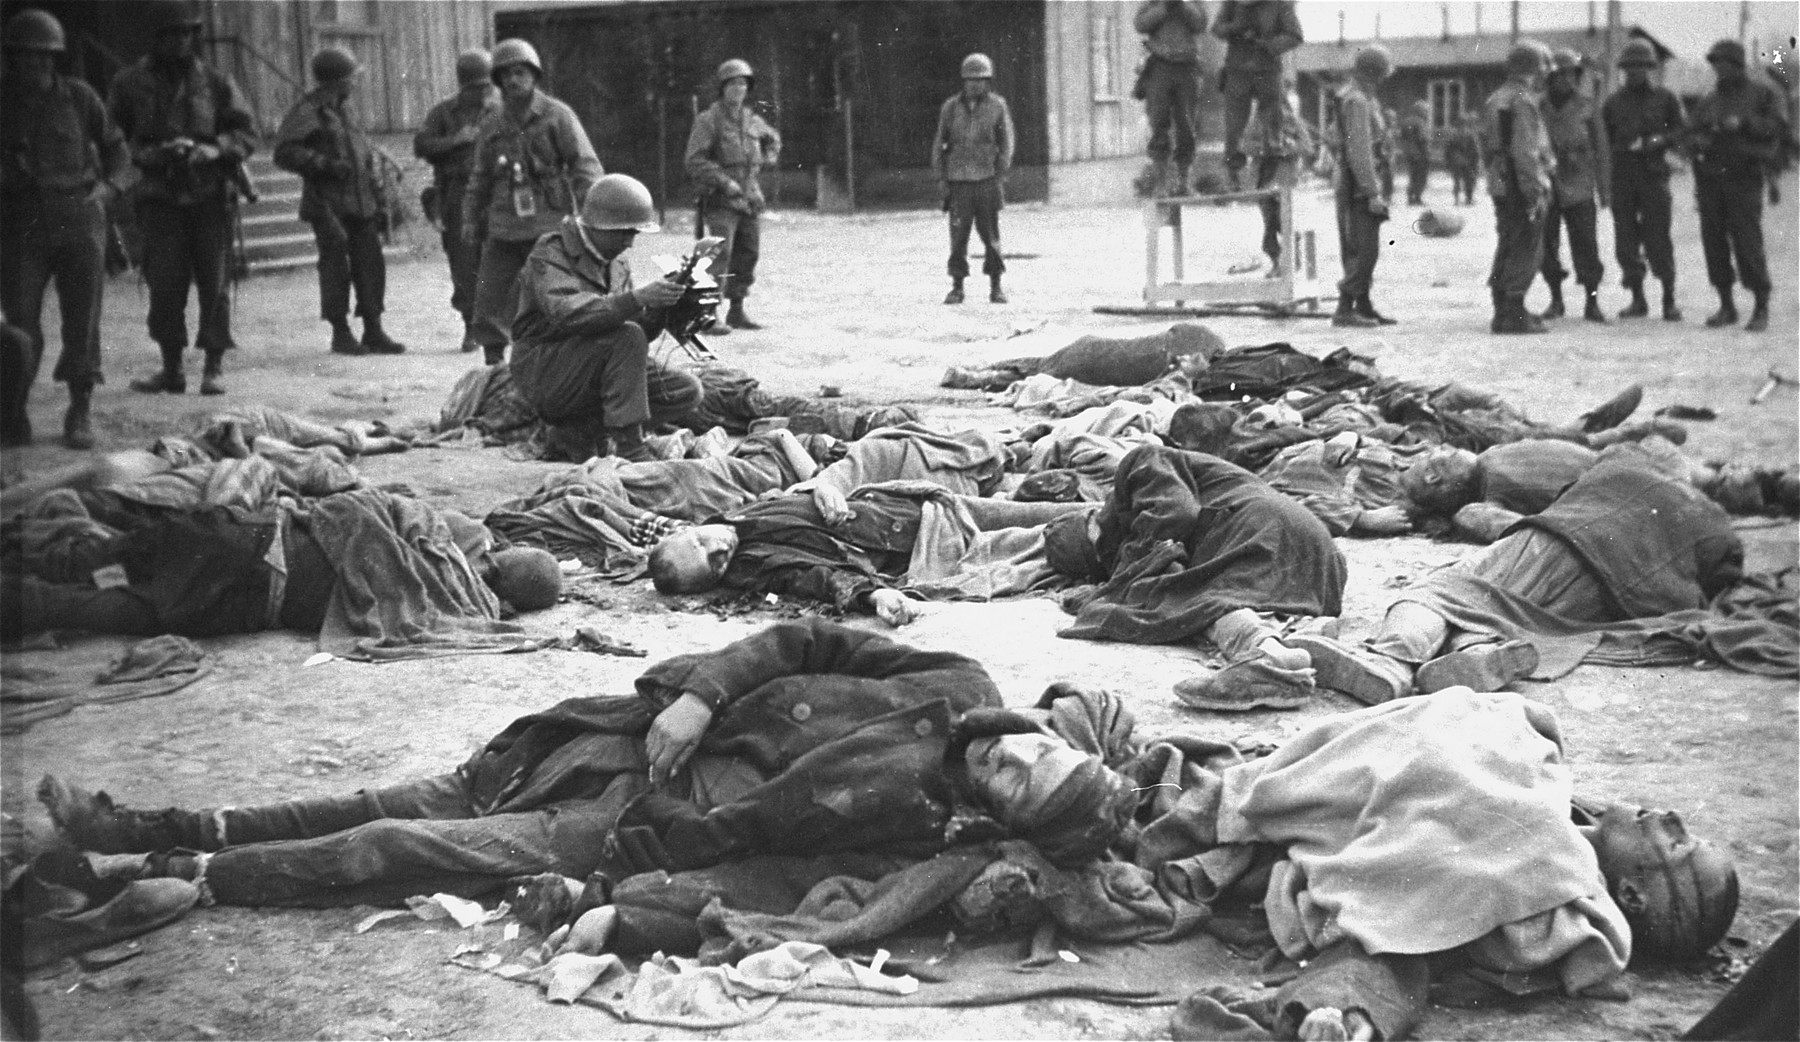 An American soldier views the bodies of prisoners shot by the SS during the evacuation of the Ohrdruf concentration camp.